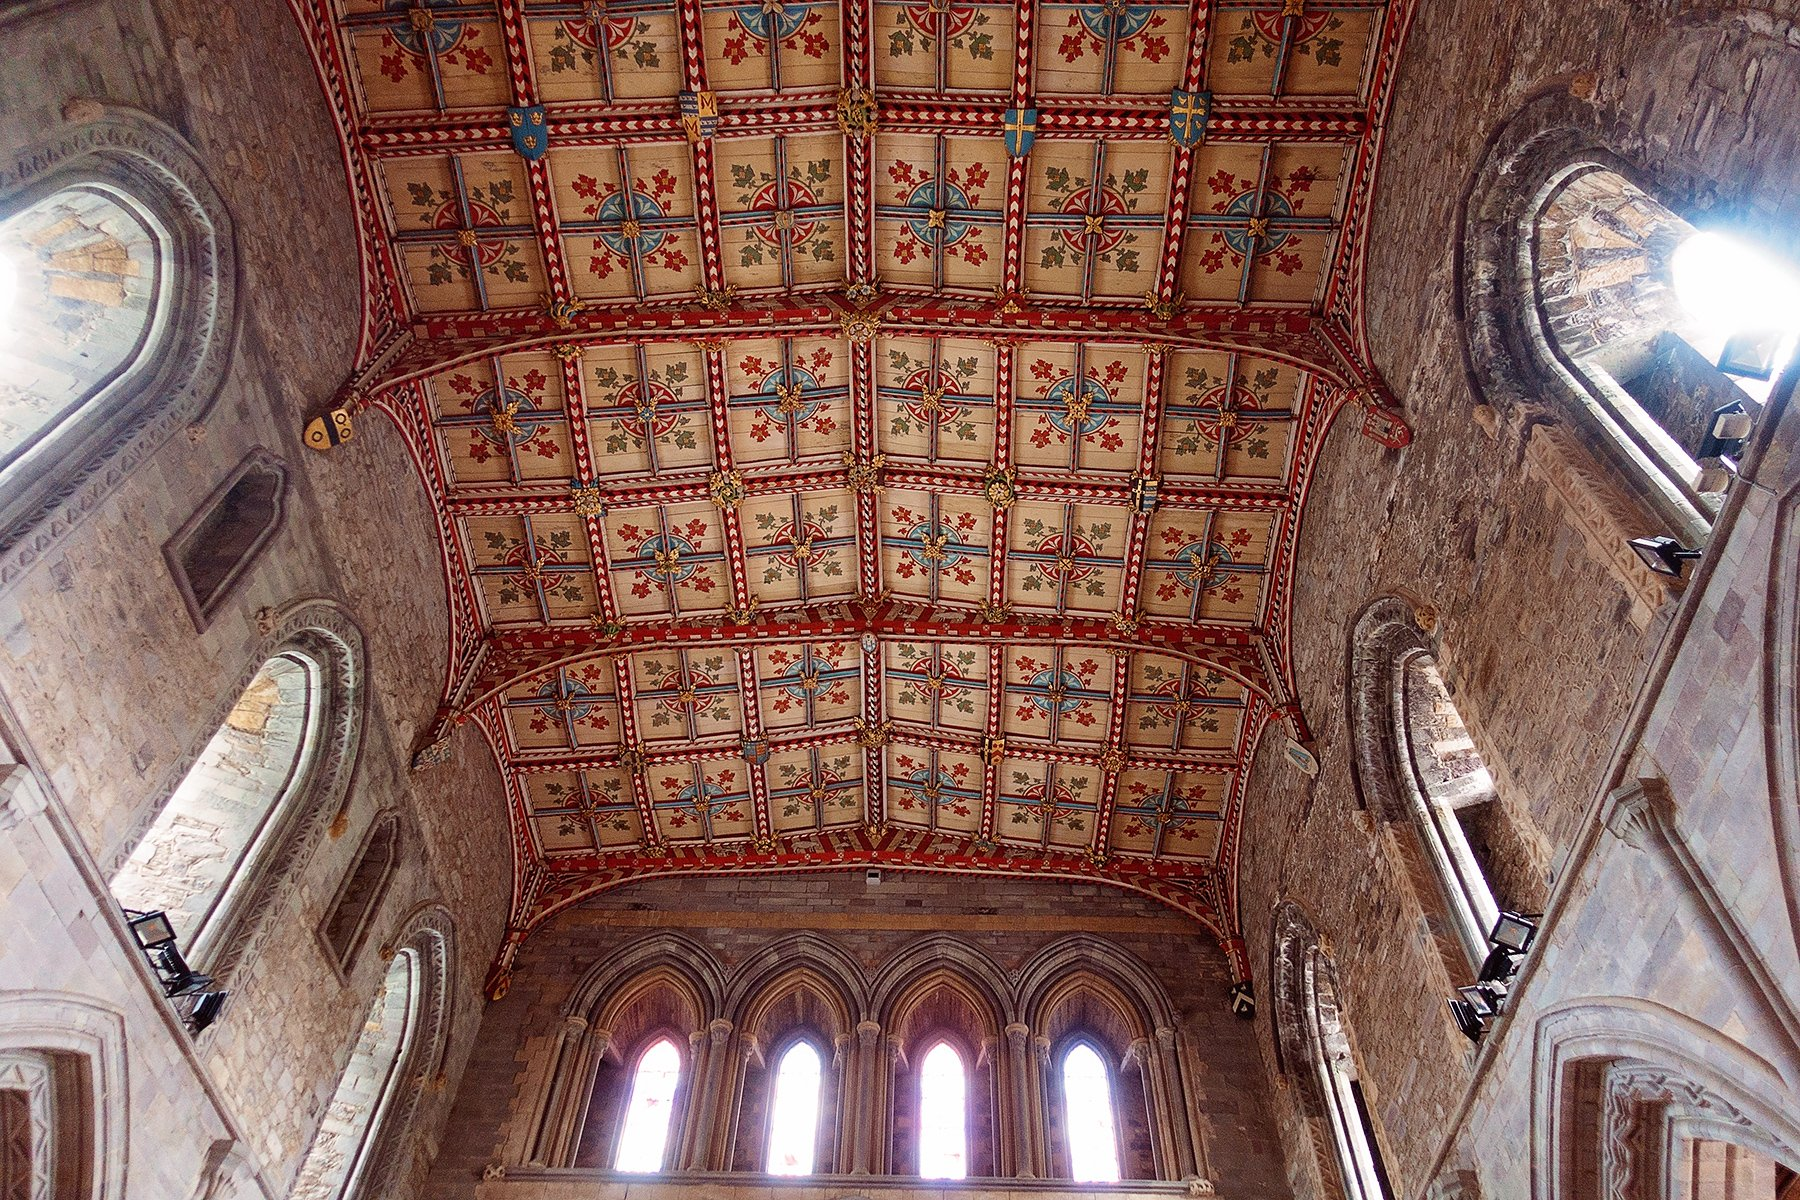 Interior of St. David's Cathedral